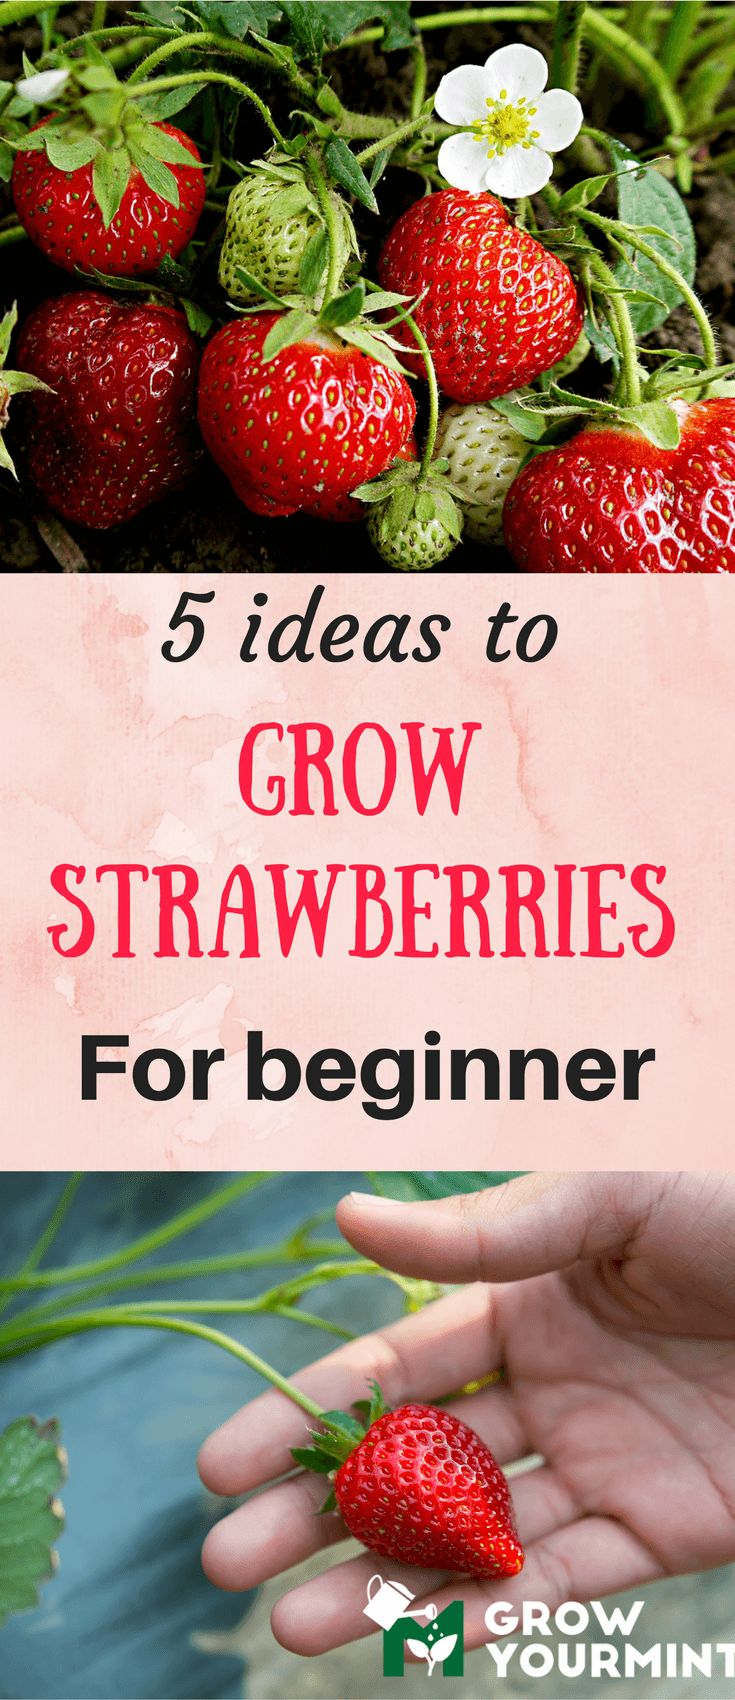 5 ideas to grow strawberries for beginners